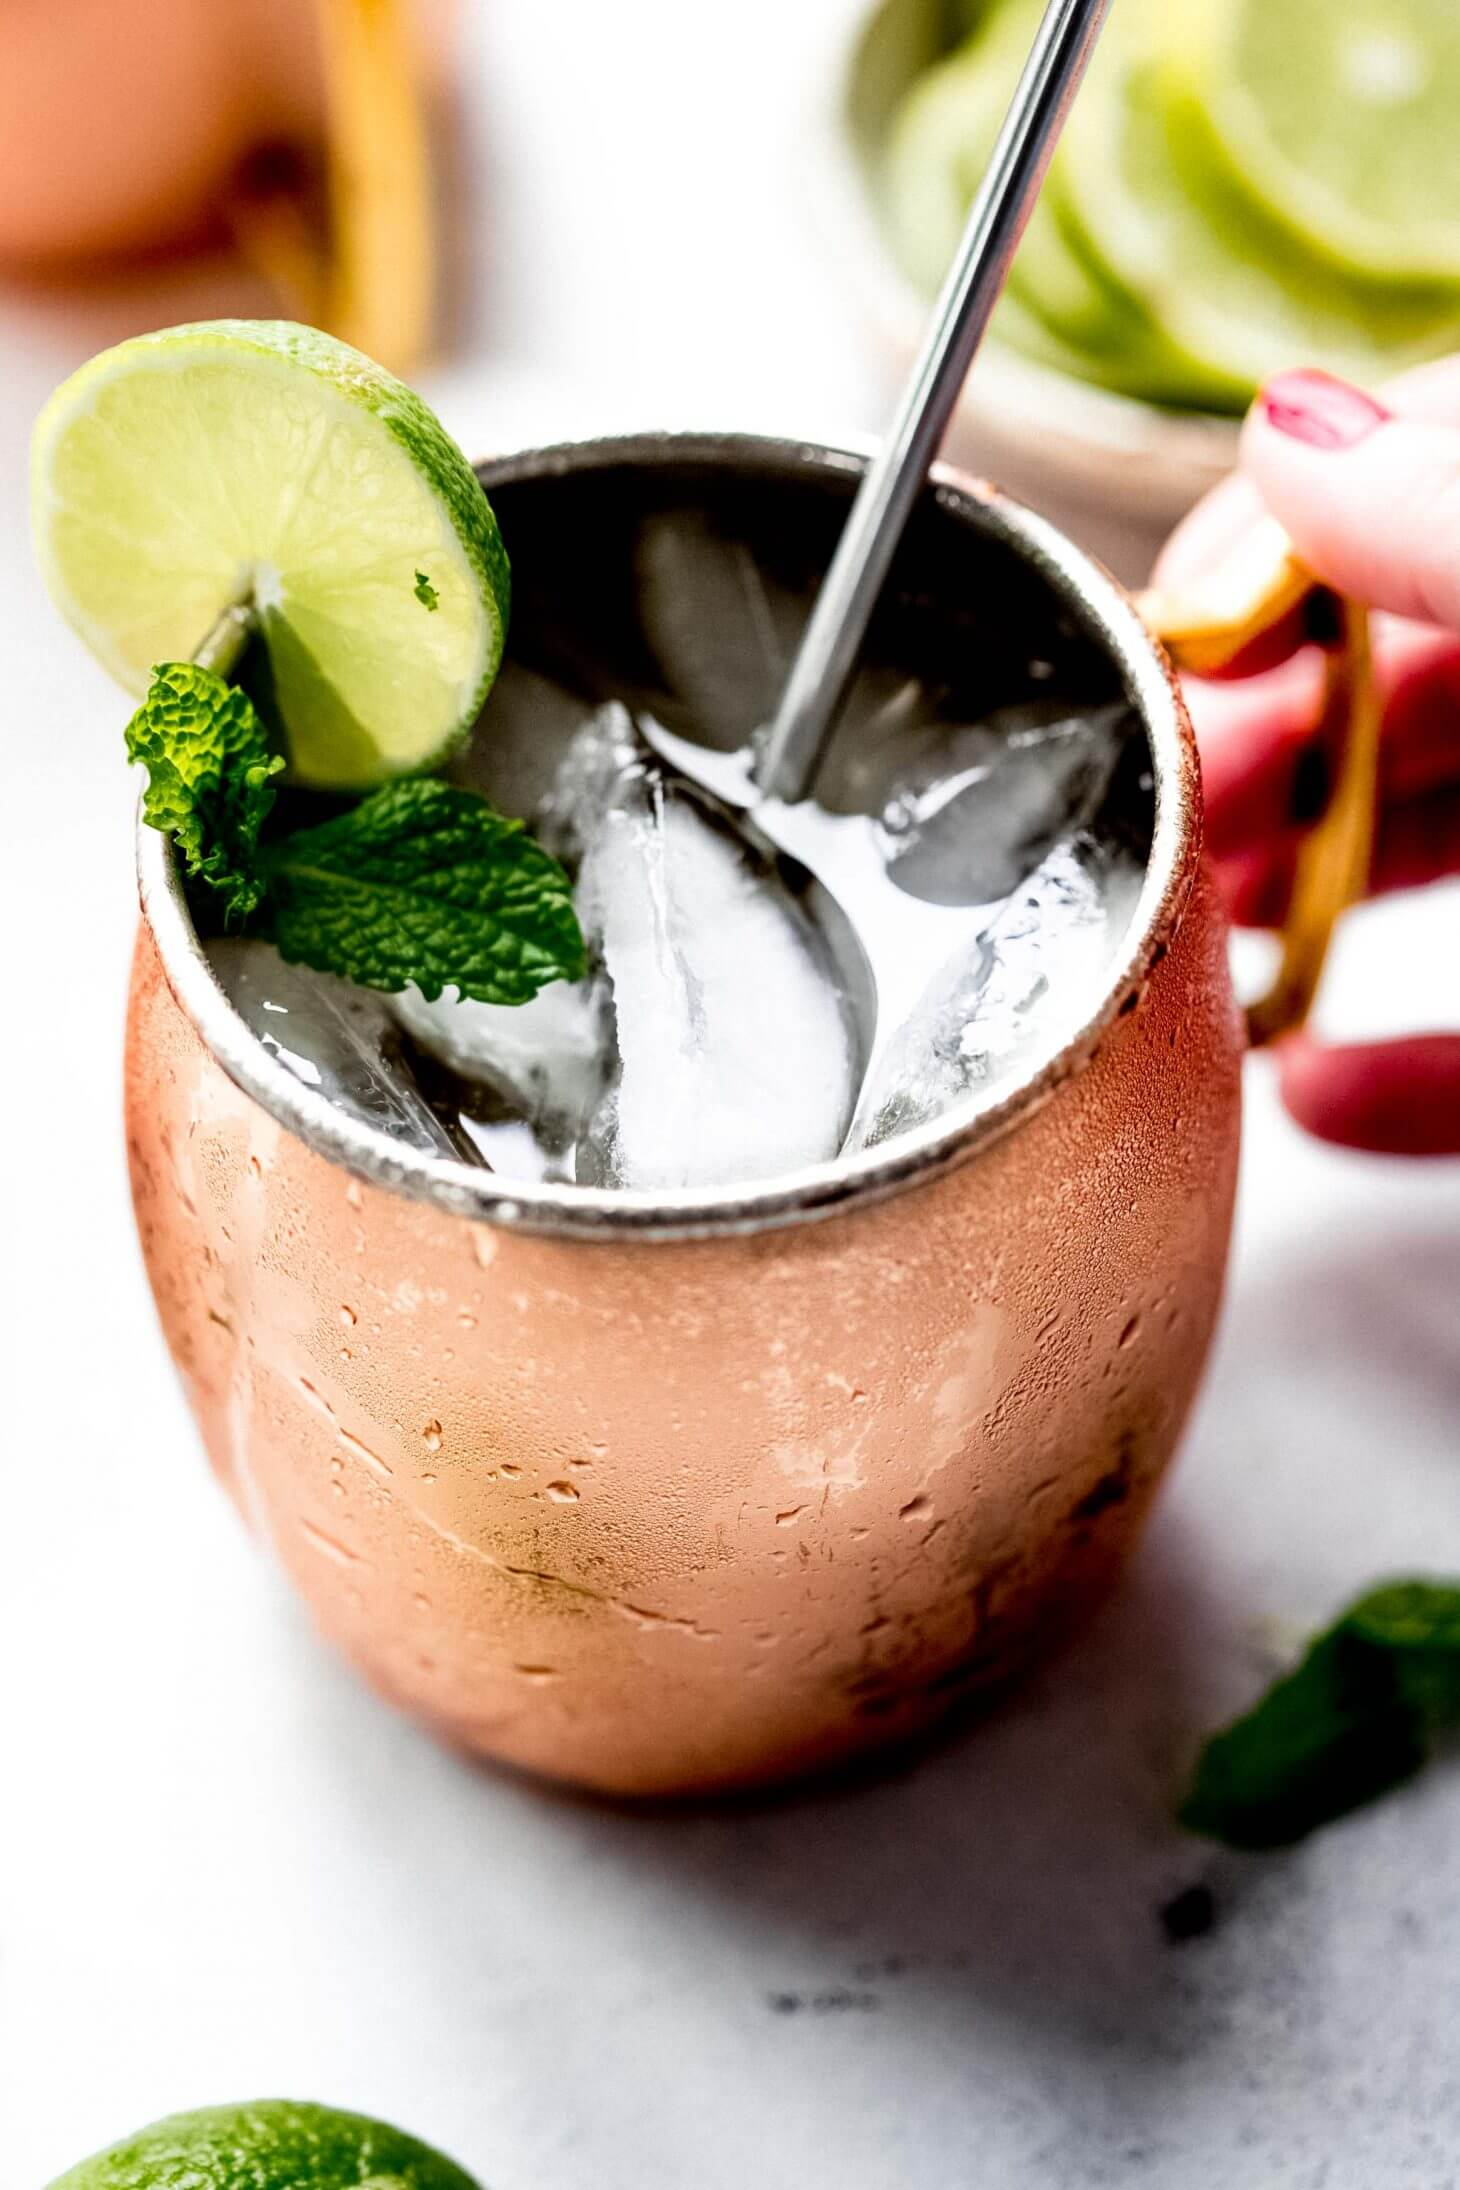 Moscow mule in copper mug with hand holding handle